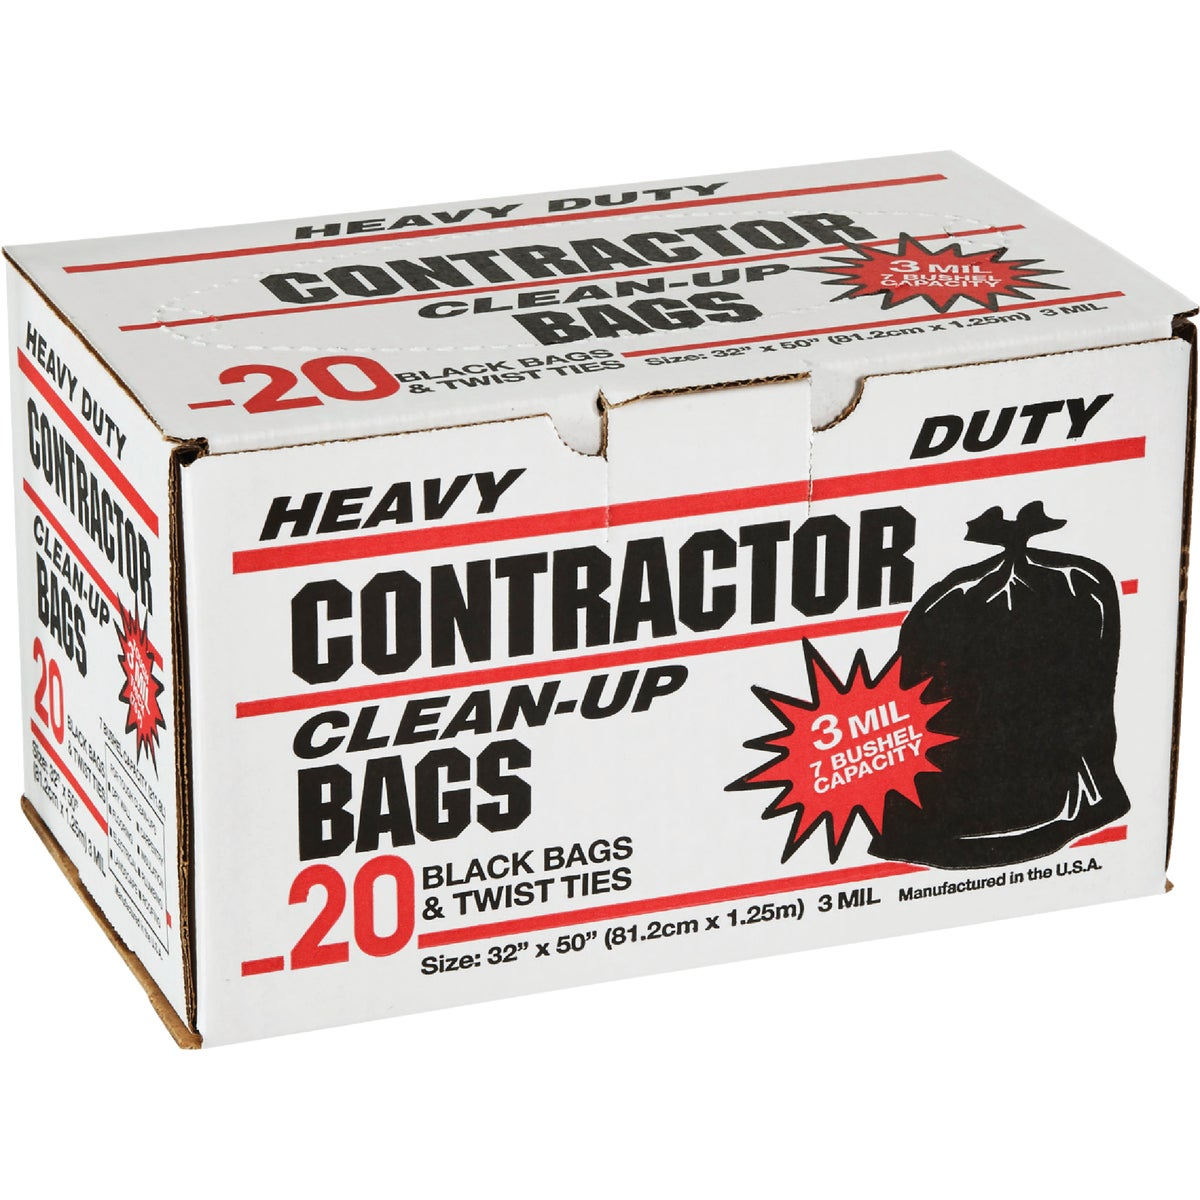 20CT CONTRACTOR BAGS - 19020 by Primrose Plastics